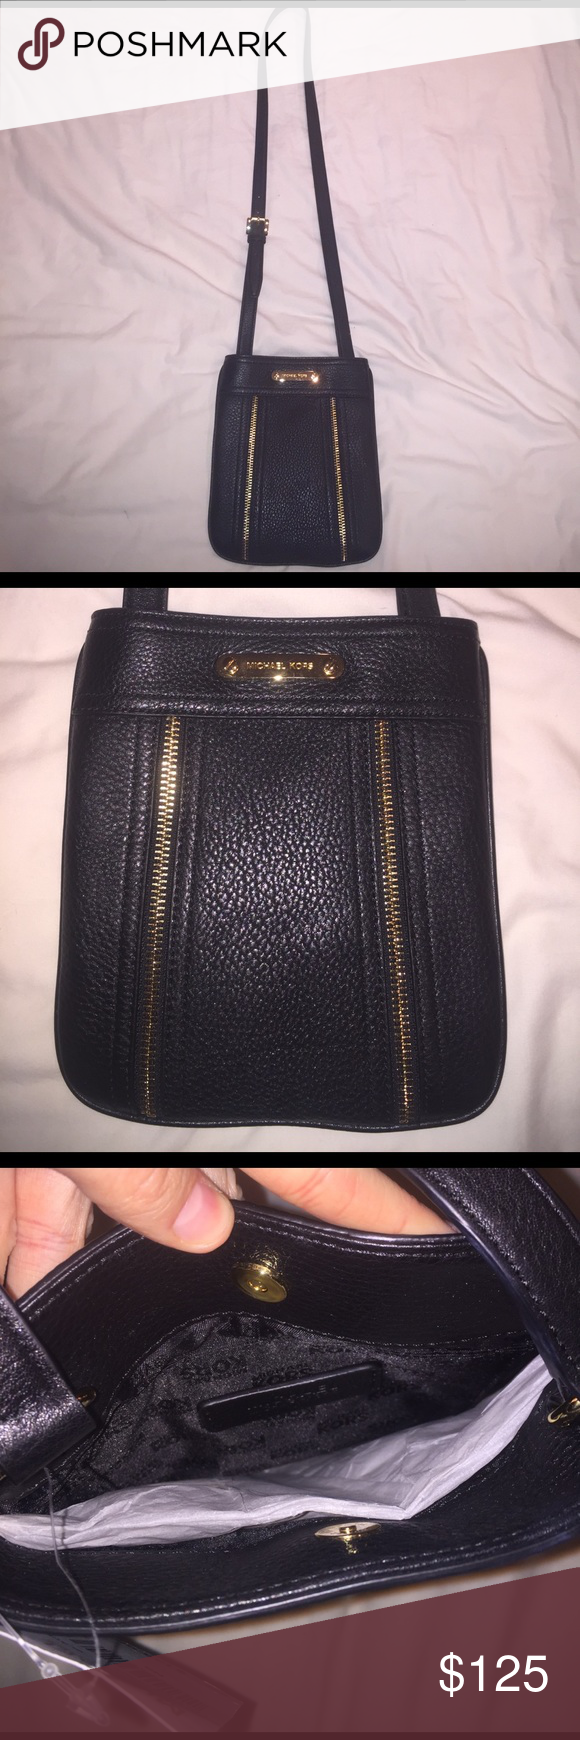 "NWT Michael Kors Crossbody bag Perfect condition nwt authentic Michael kors leather Crossbody bag. ""Moxley"" style. Black leather with gold zipper trim. Never used, tags and inside liner still attached. Beautiful bag! Smoke free home. Michael Kors Bags Crossbody Bags"